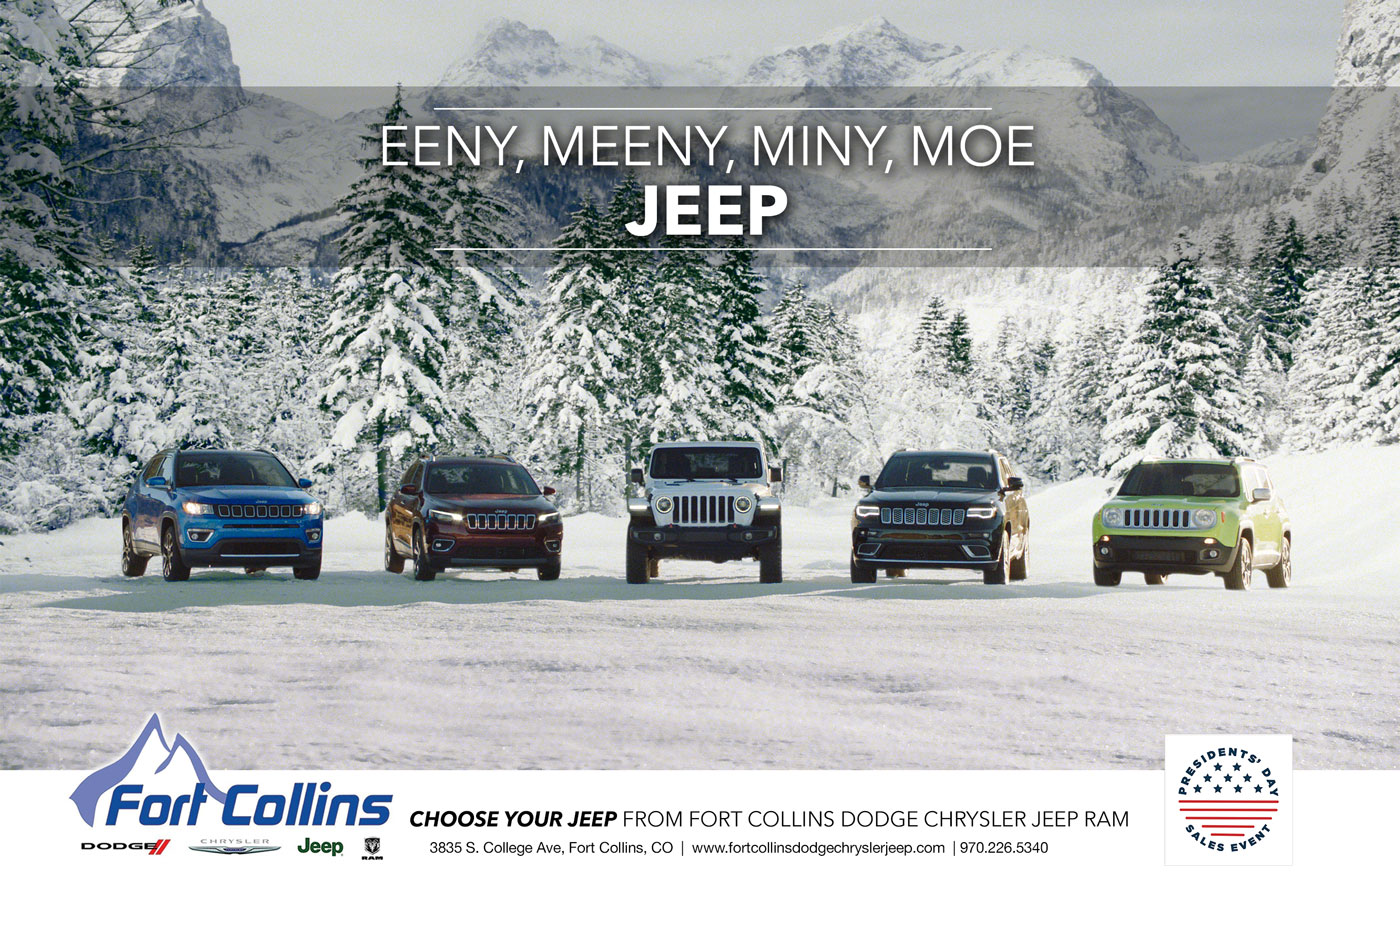 Dodge Jeep Fort Collins Ad Design